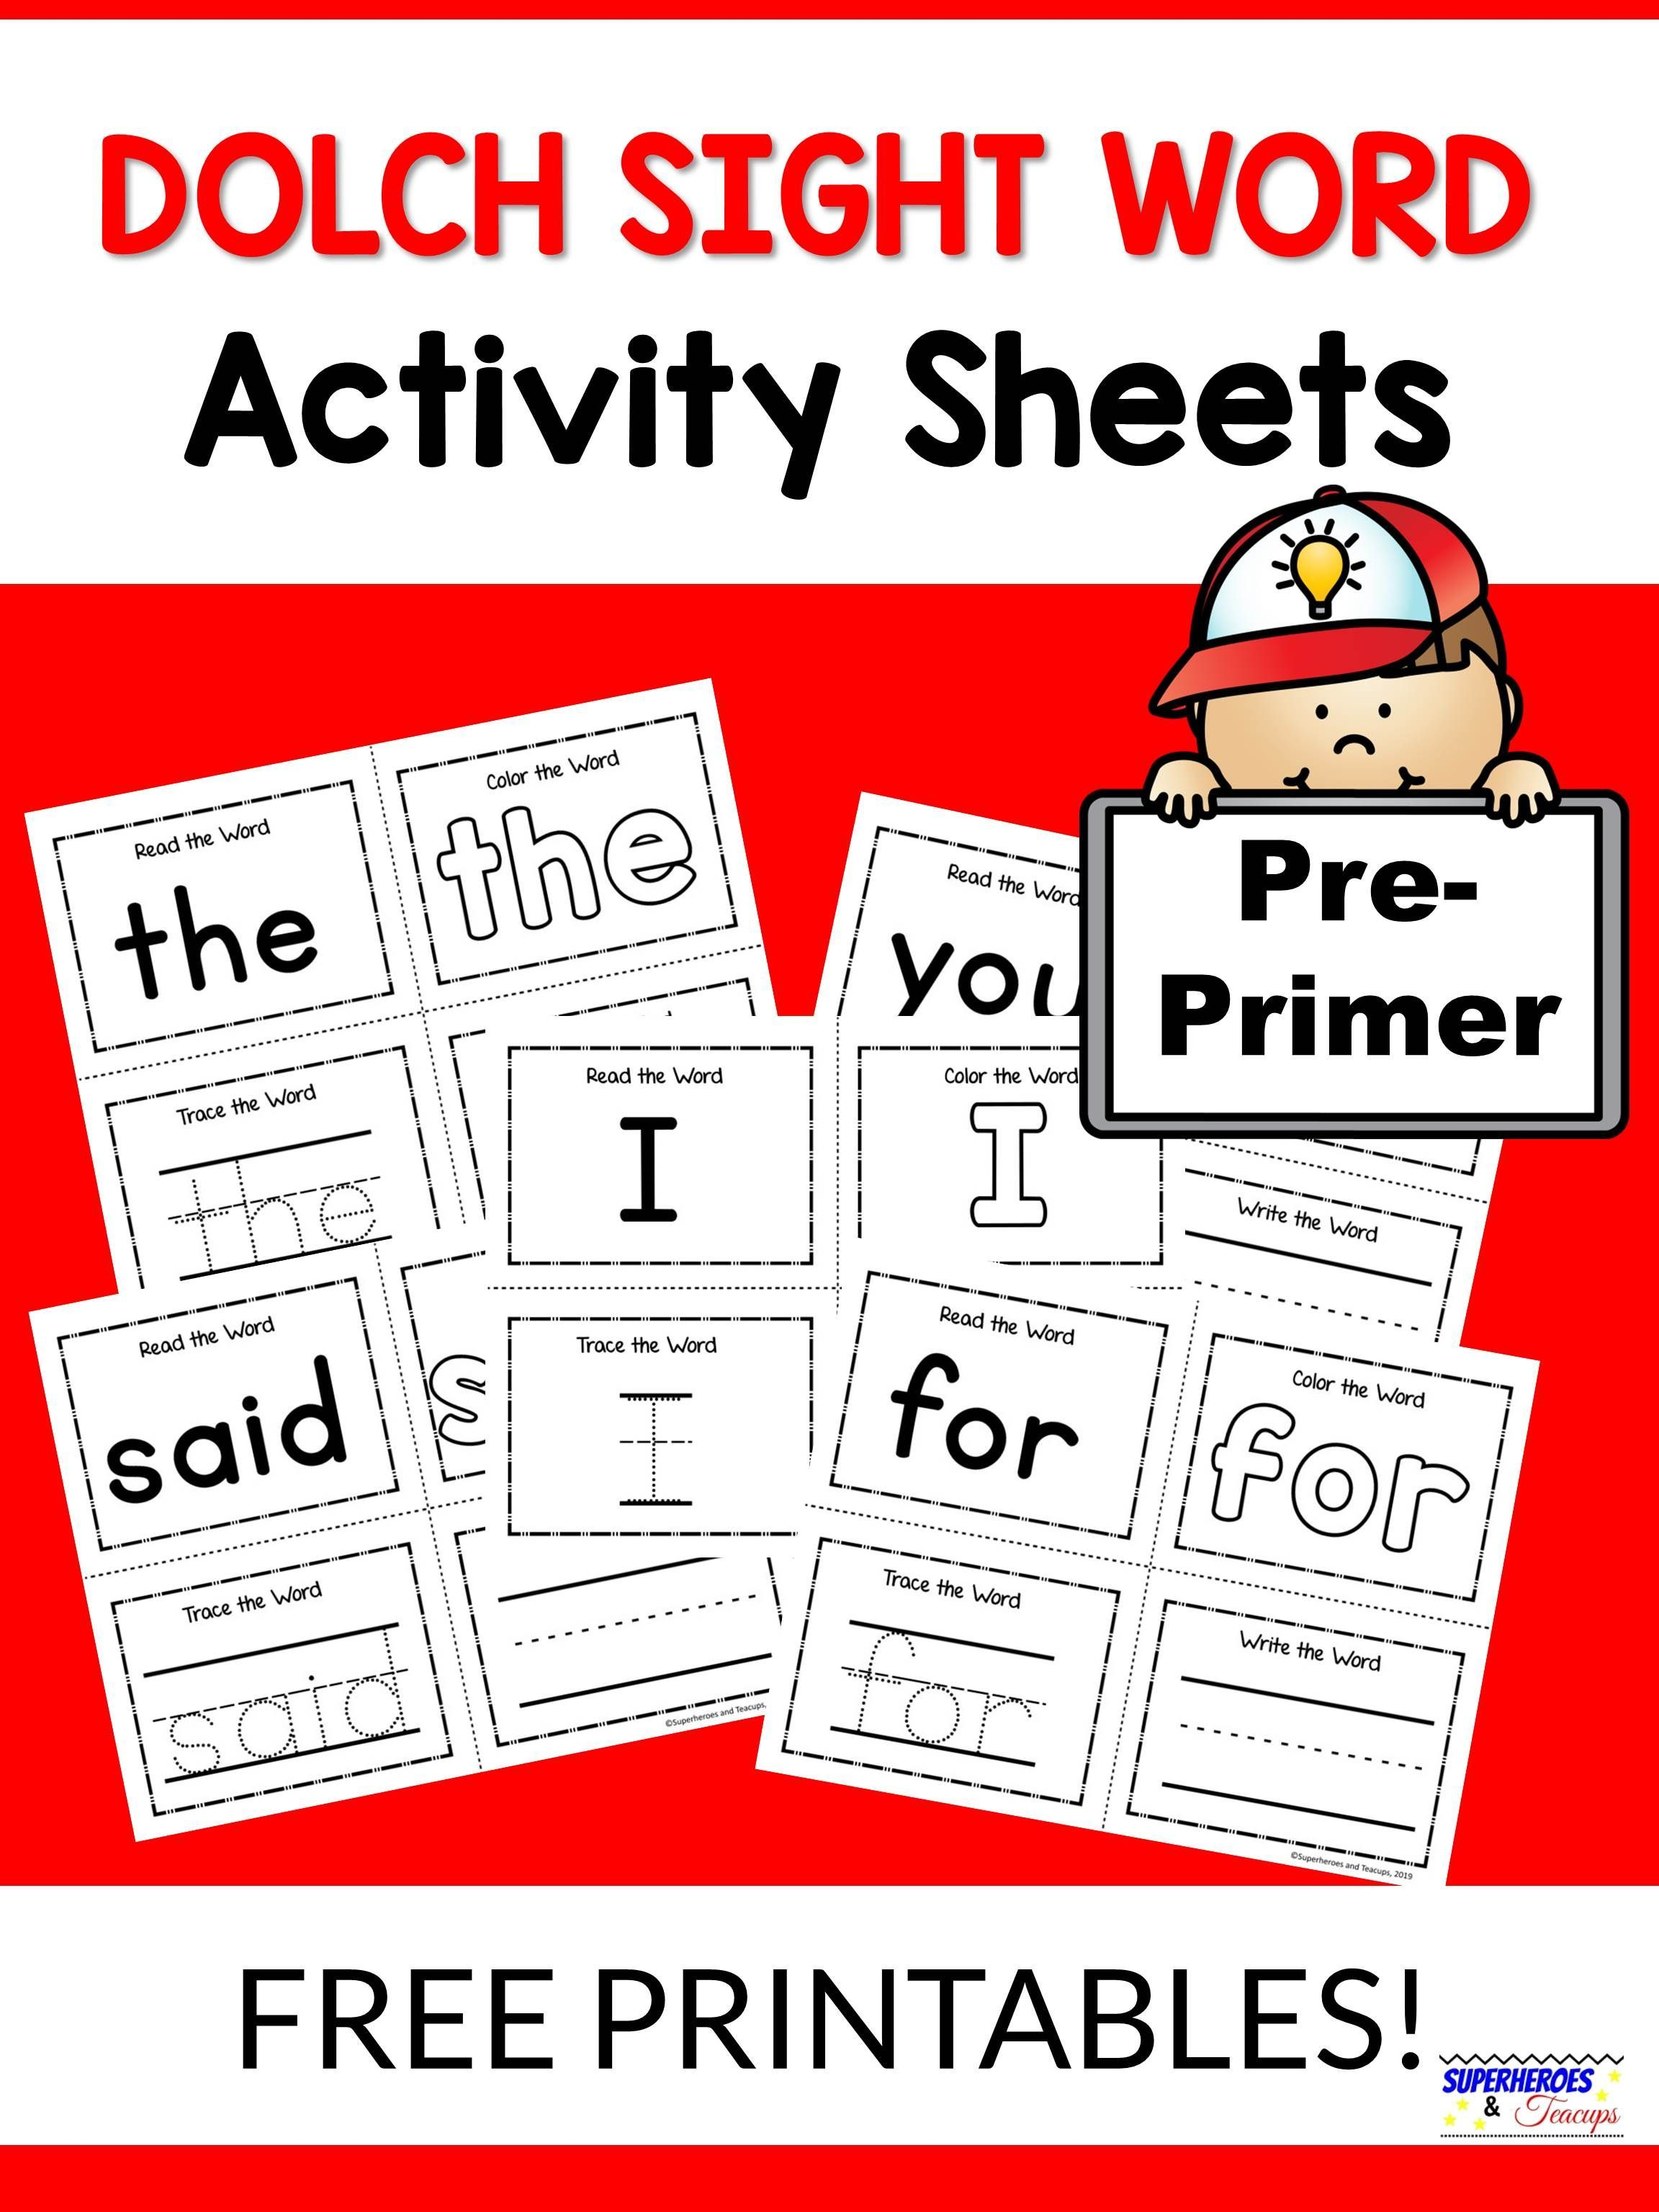 Pre Primer Dolch Sight Word Activity Sheets In With